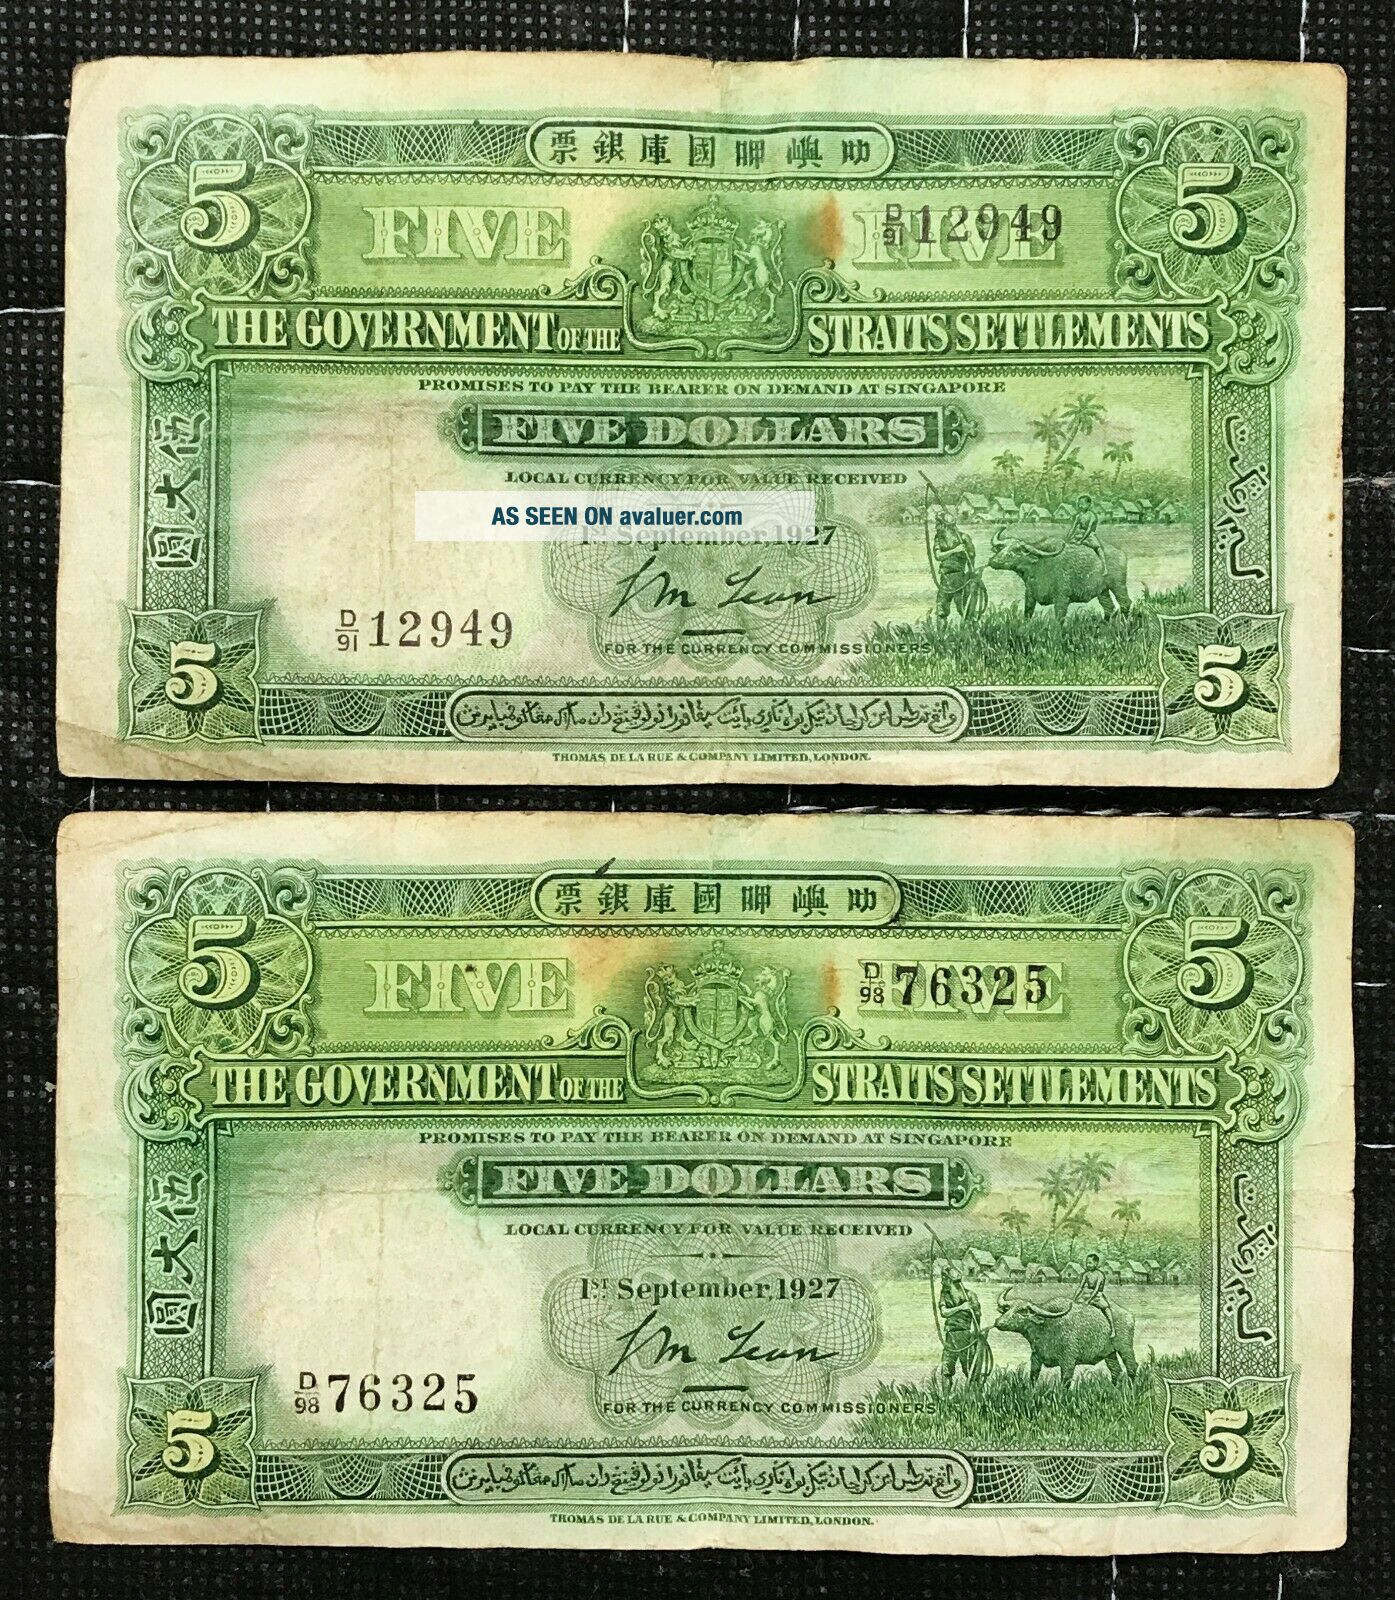 Rare 1927 Straits Settlements $5 Bank Notes Currency